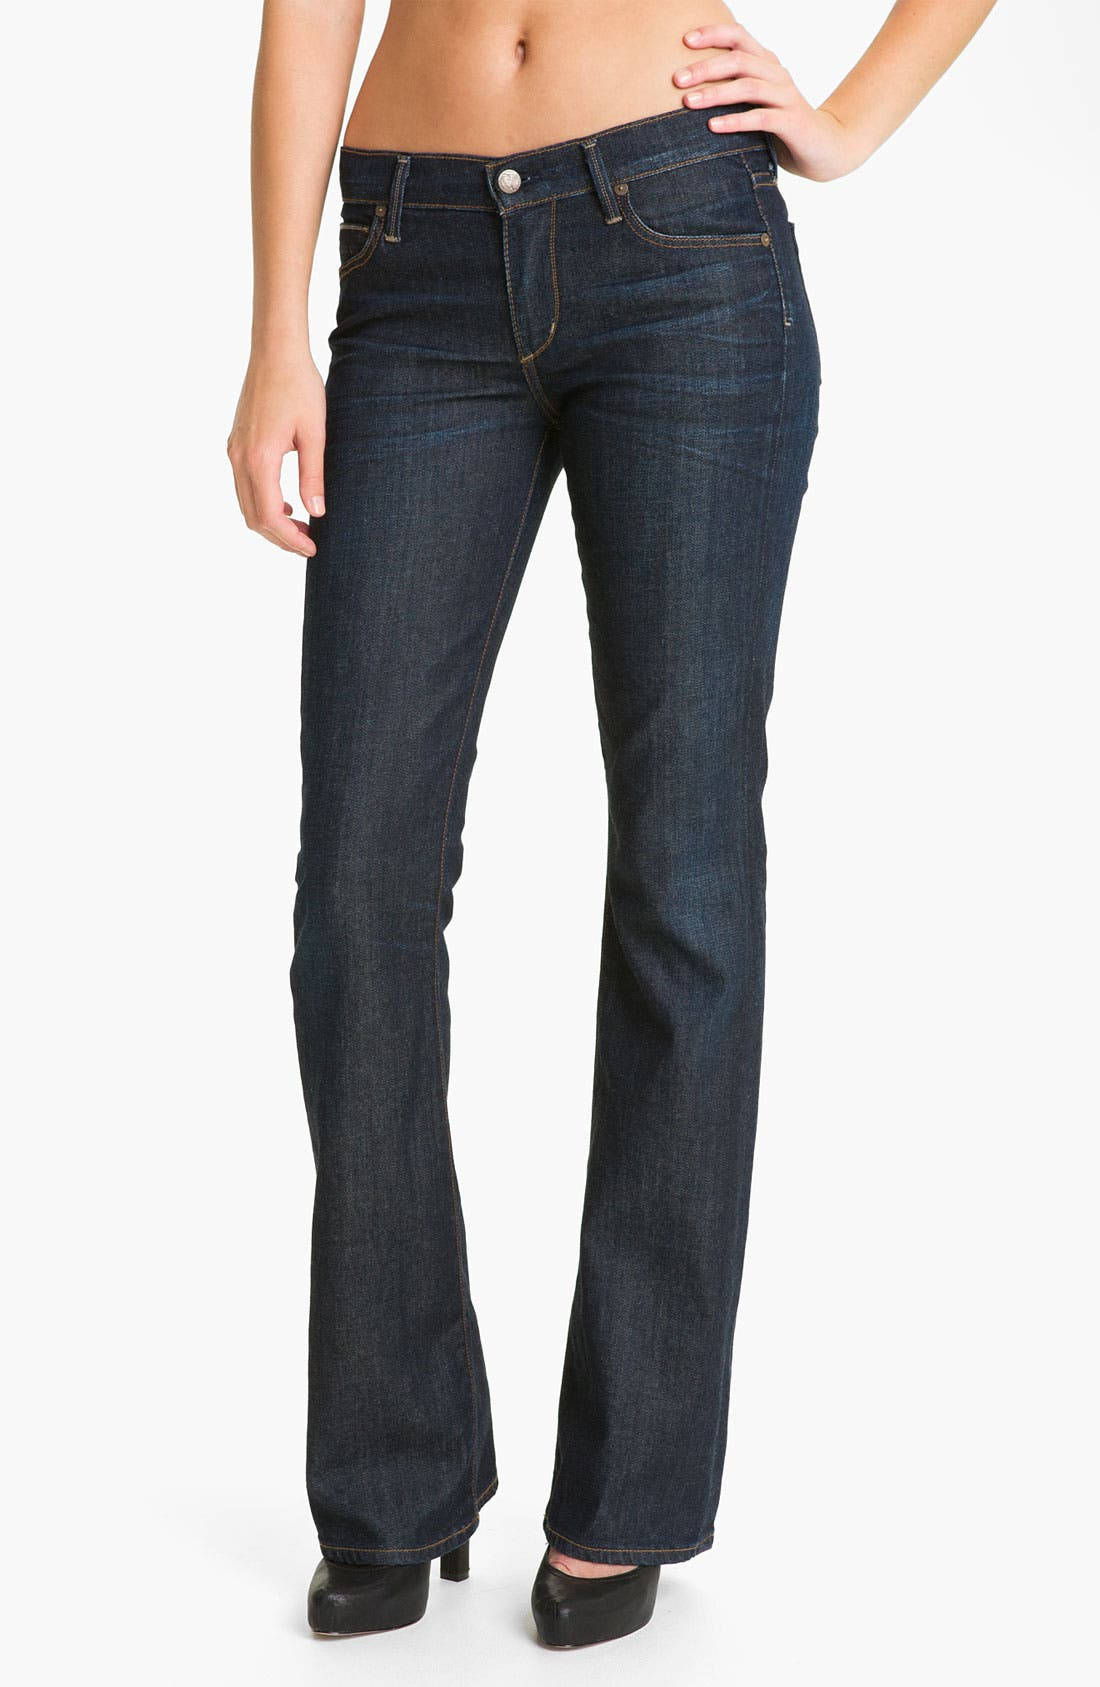 Alternate Image 1 Selected - Citizens of Humanity 'Amber' Bootcut Jeans (Glory)